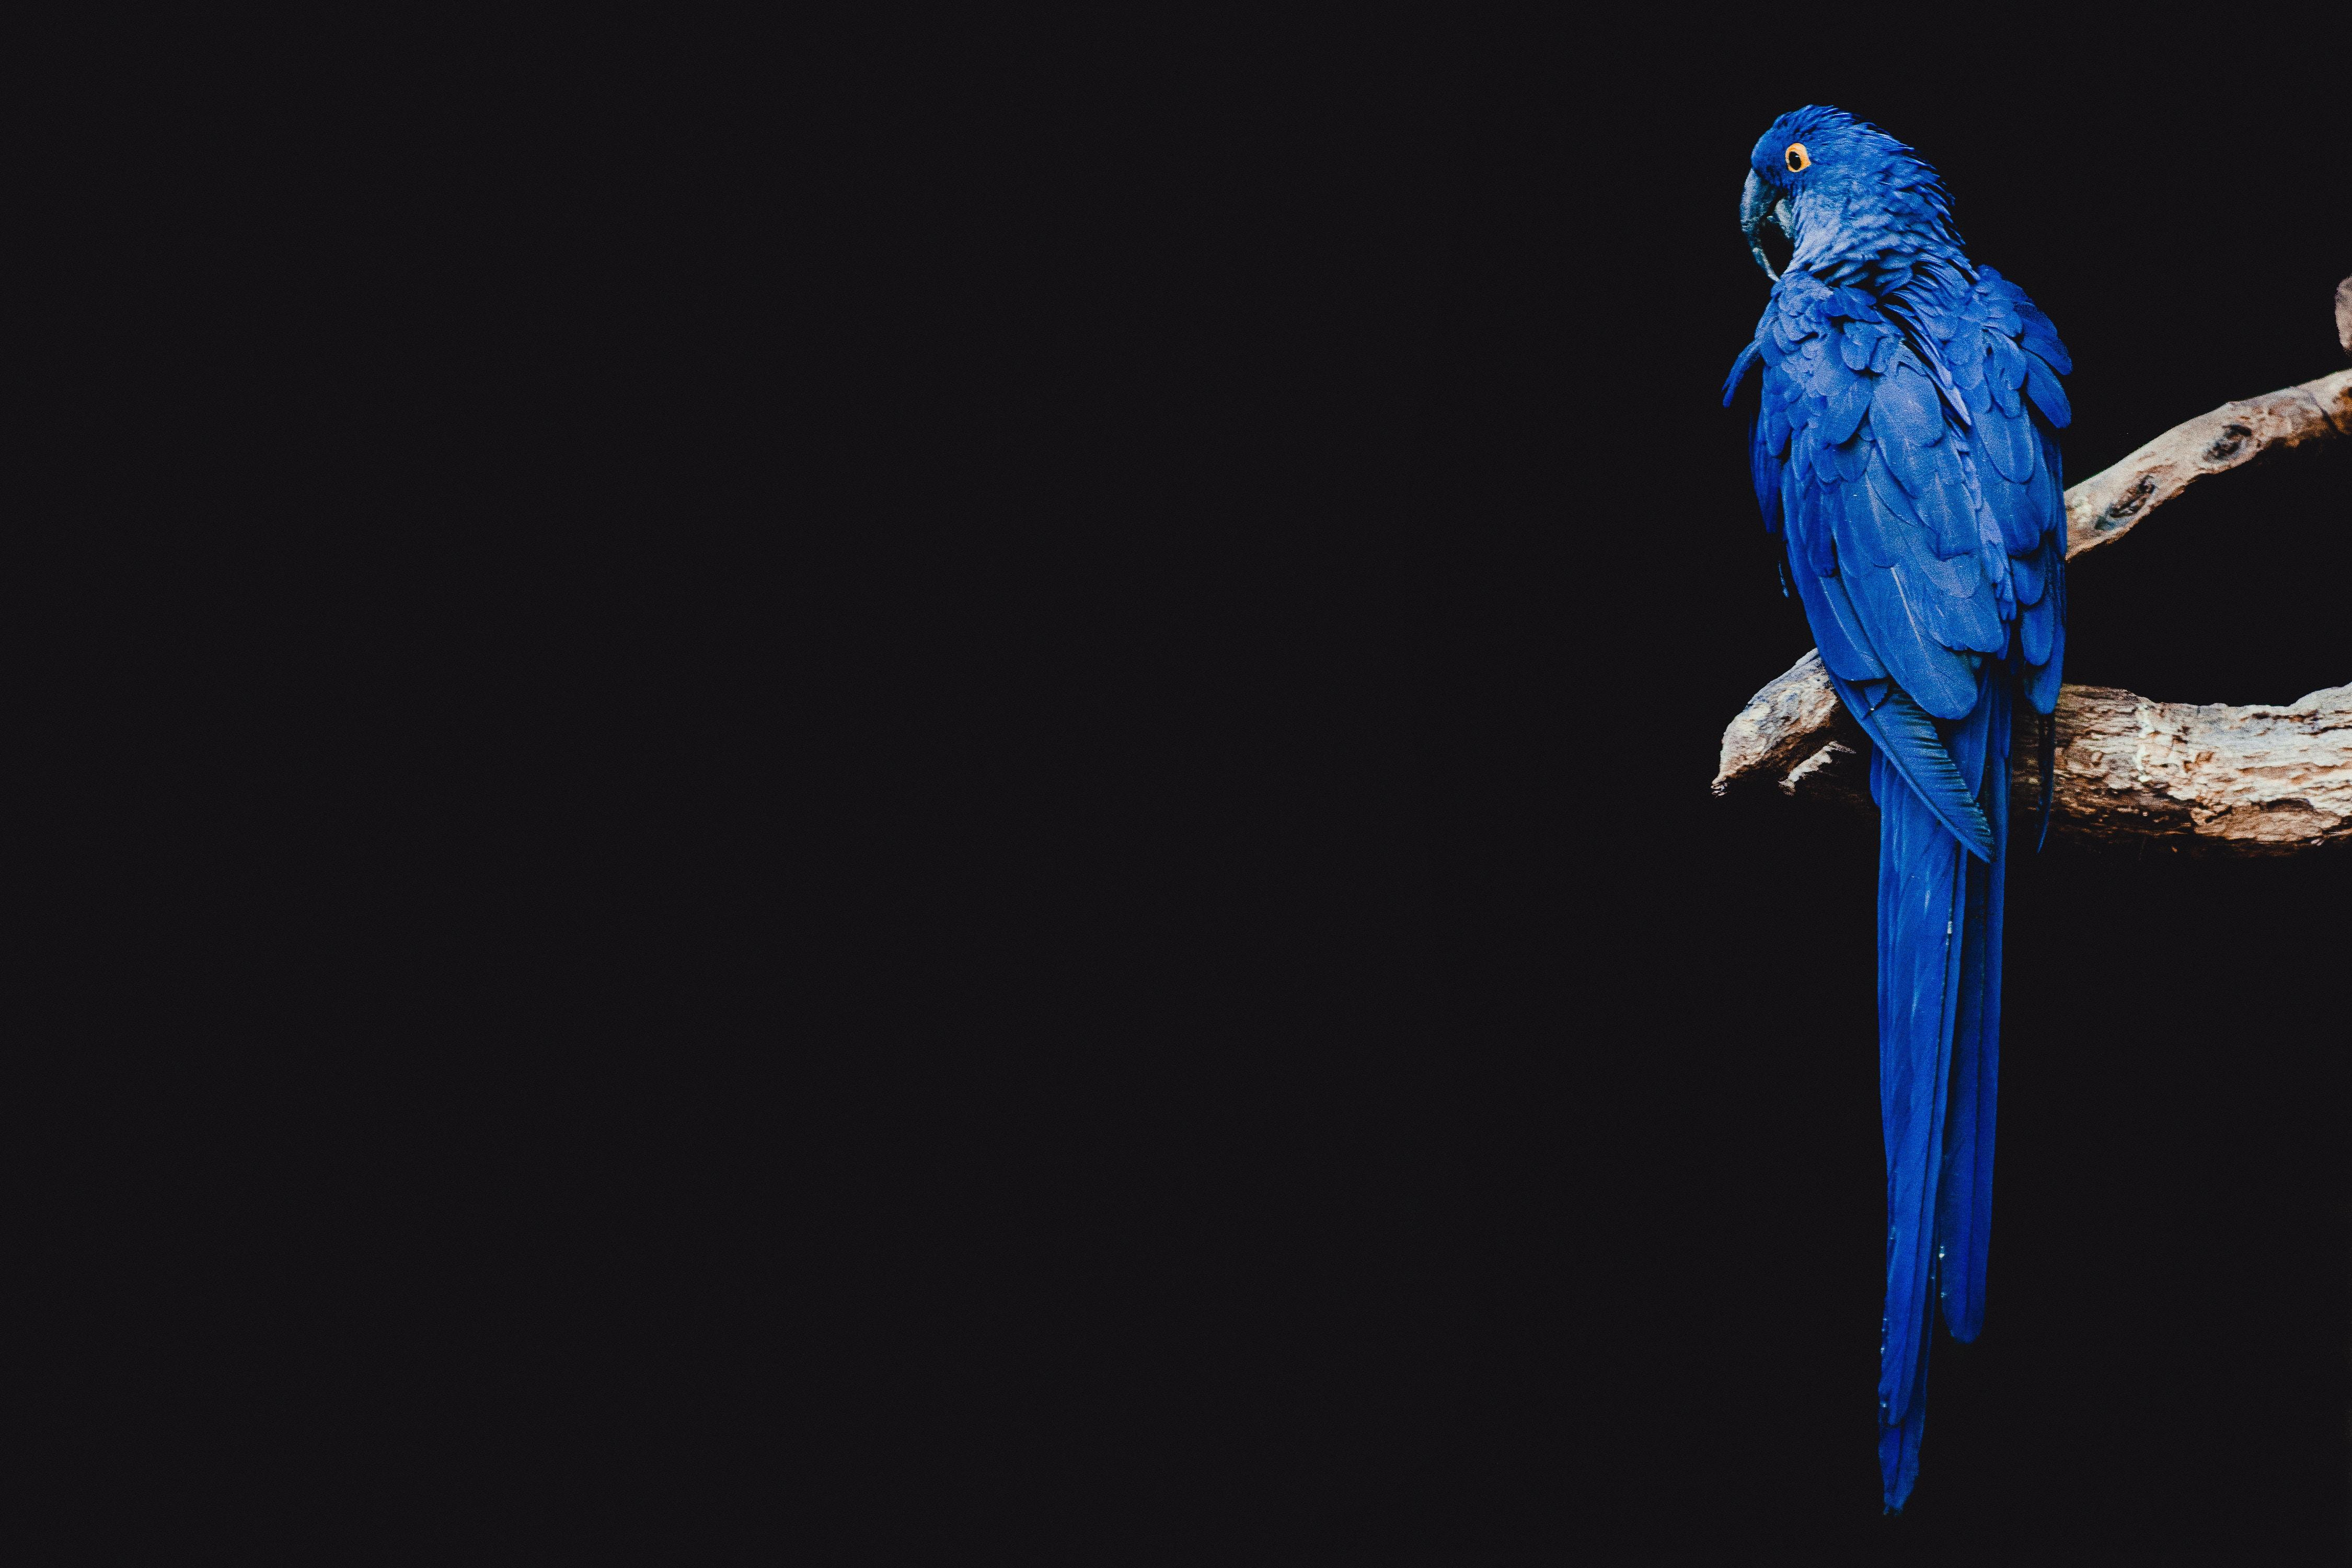 Download wallpapers 4500x3000 parrot, bird, branch hd backgrounds